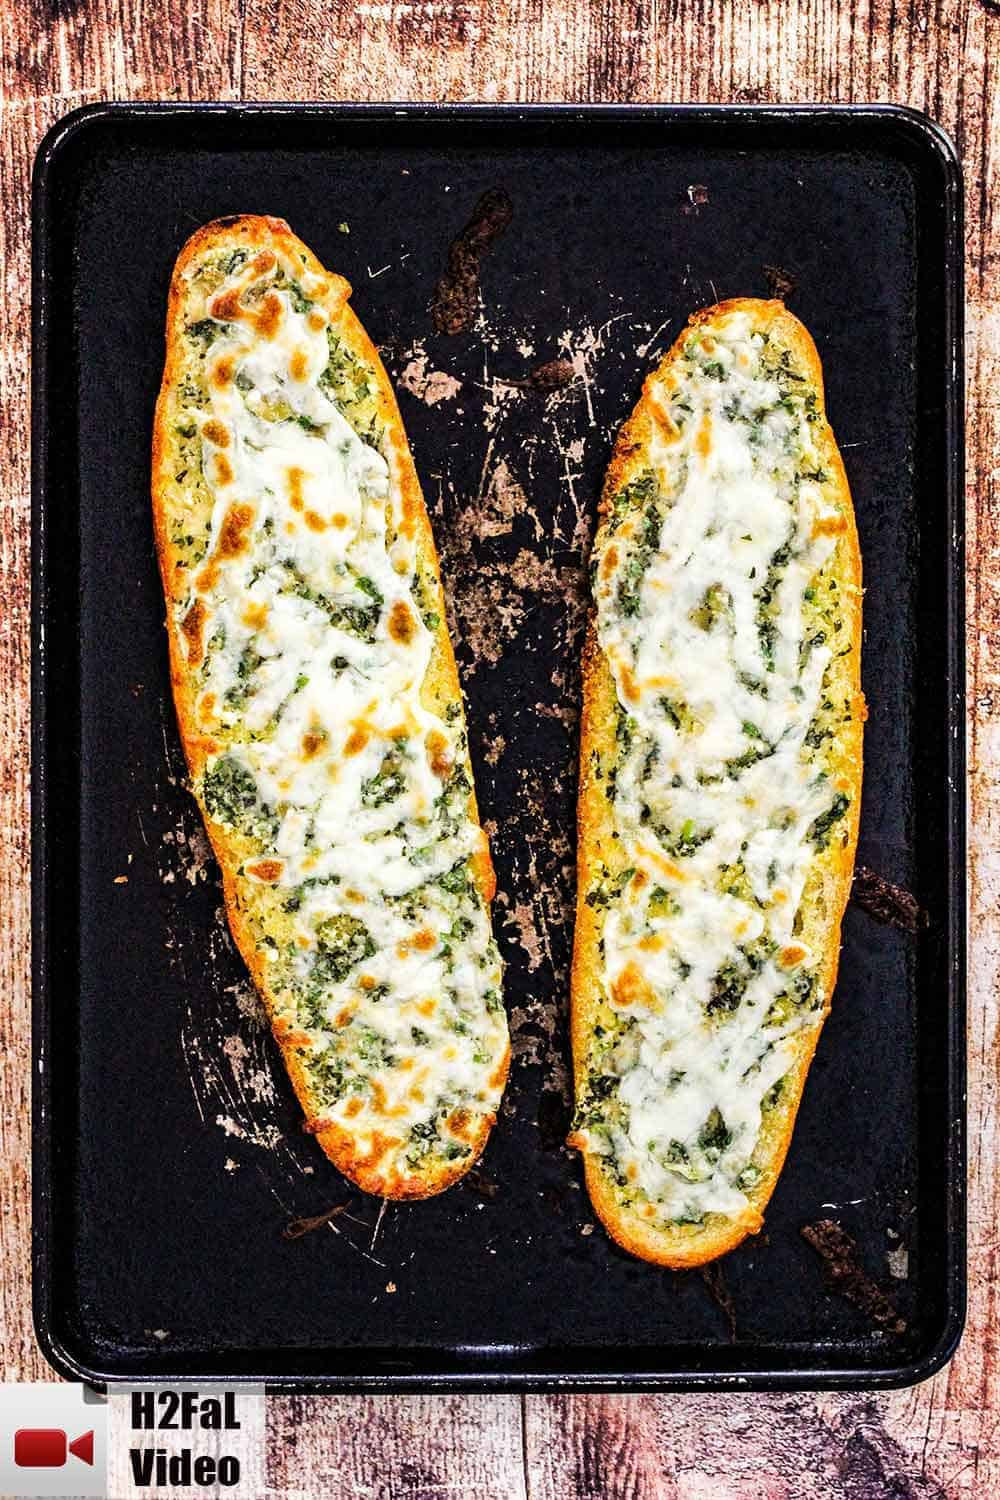 Two loaves of cheesy garlic bread on a scratched black baking pan.